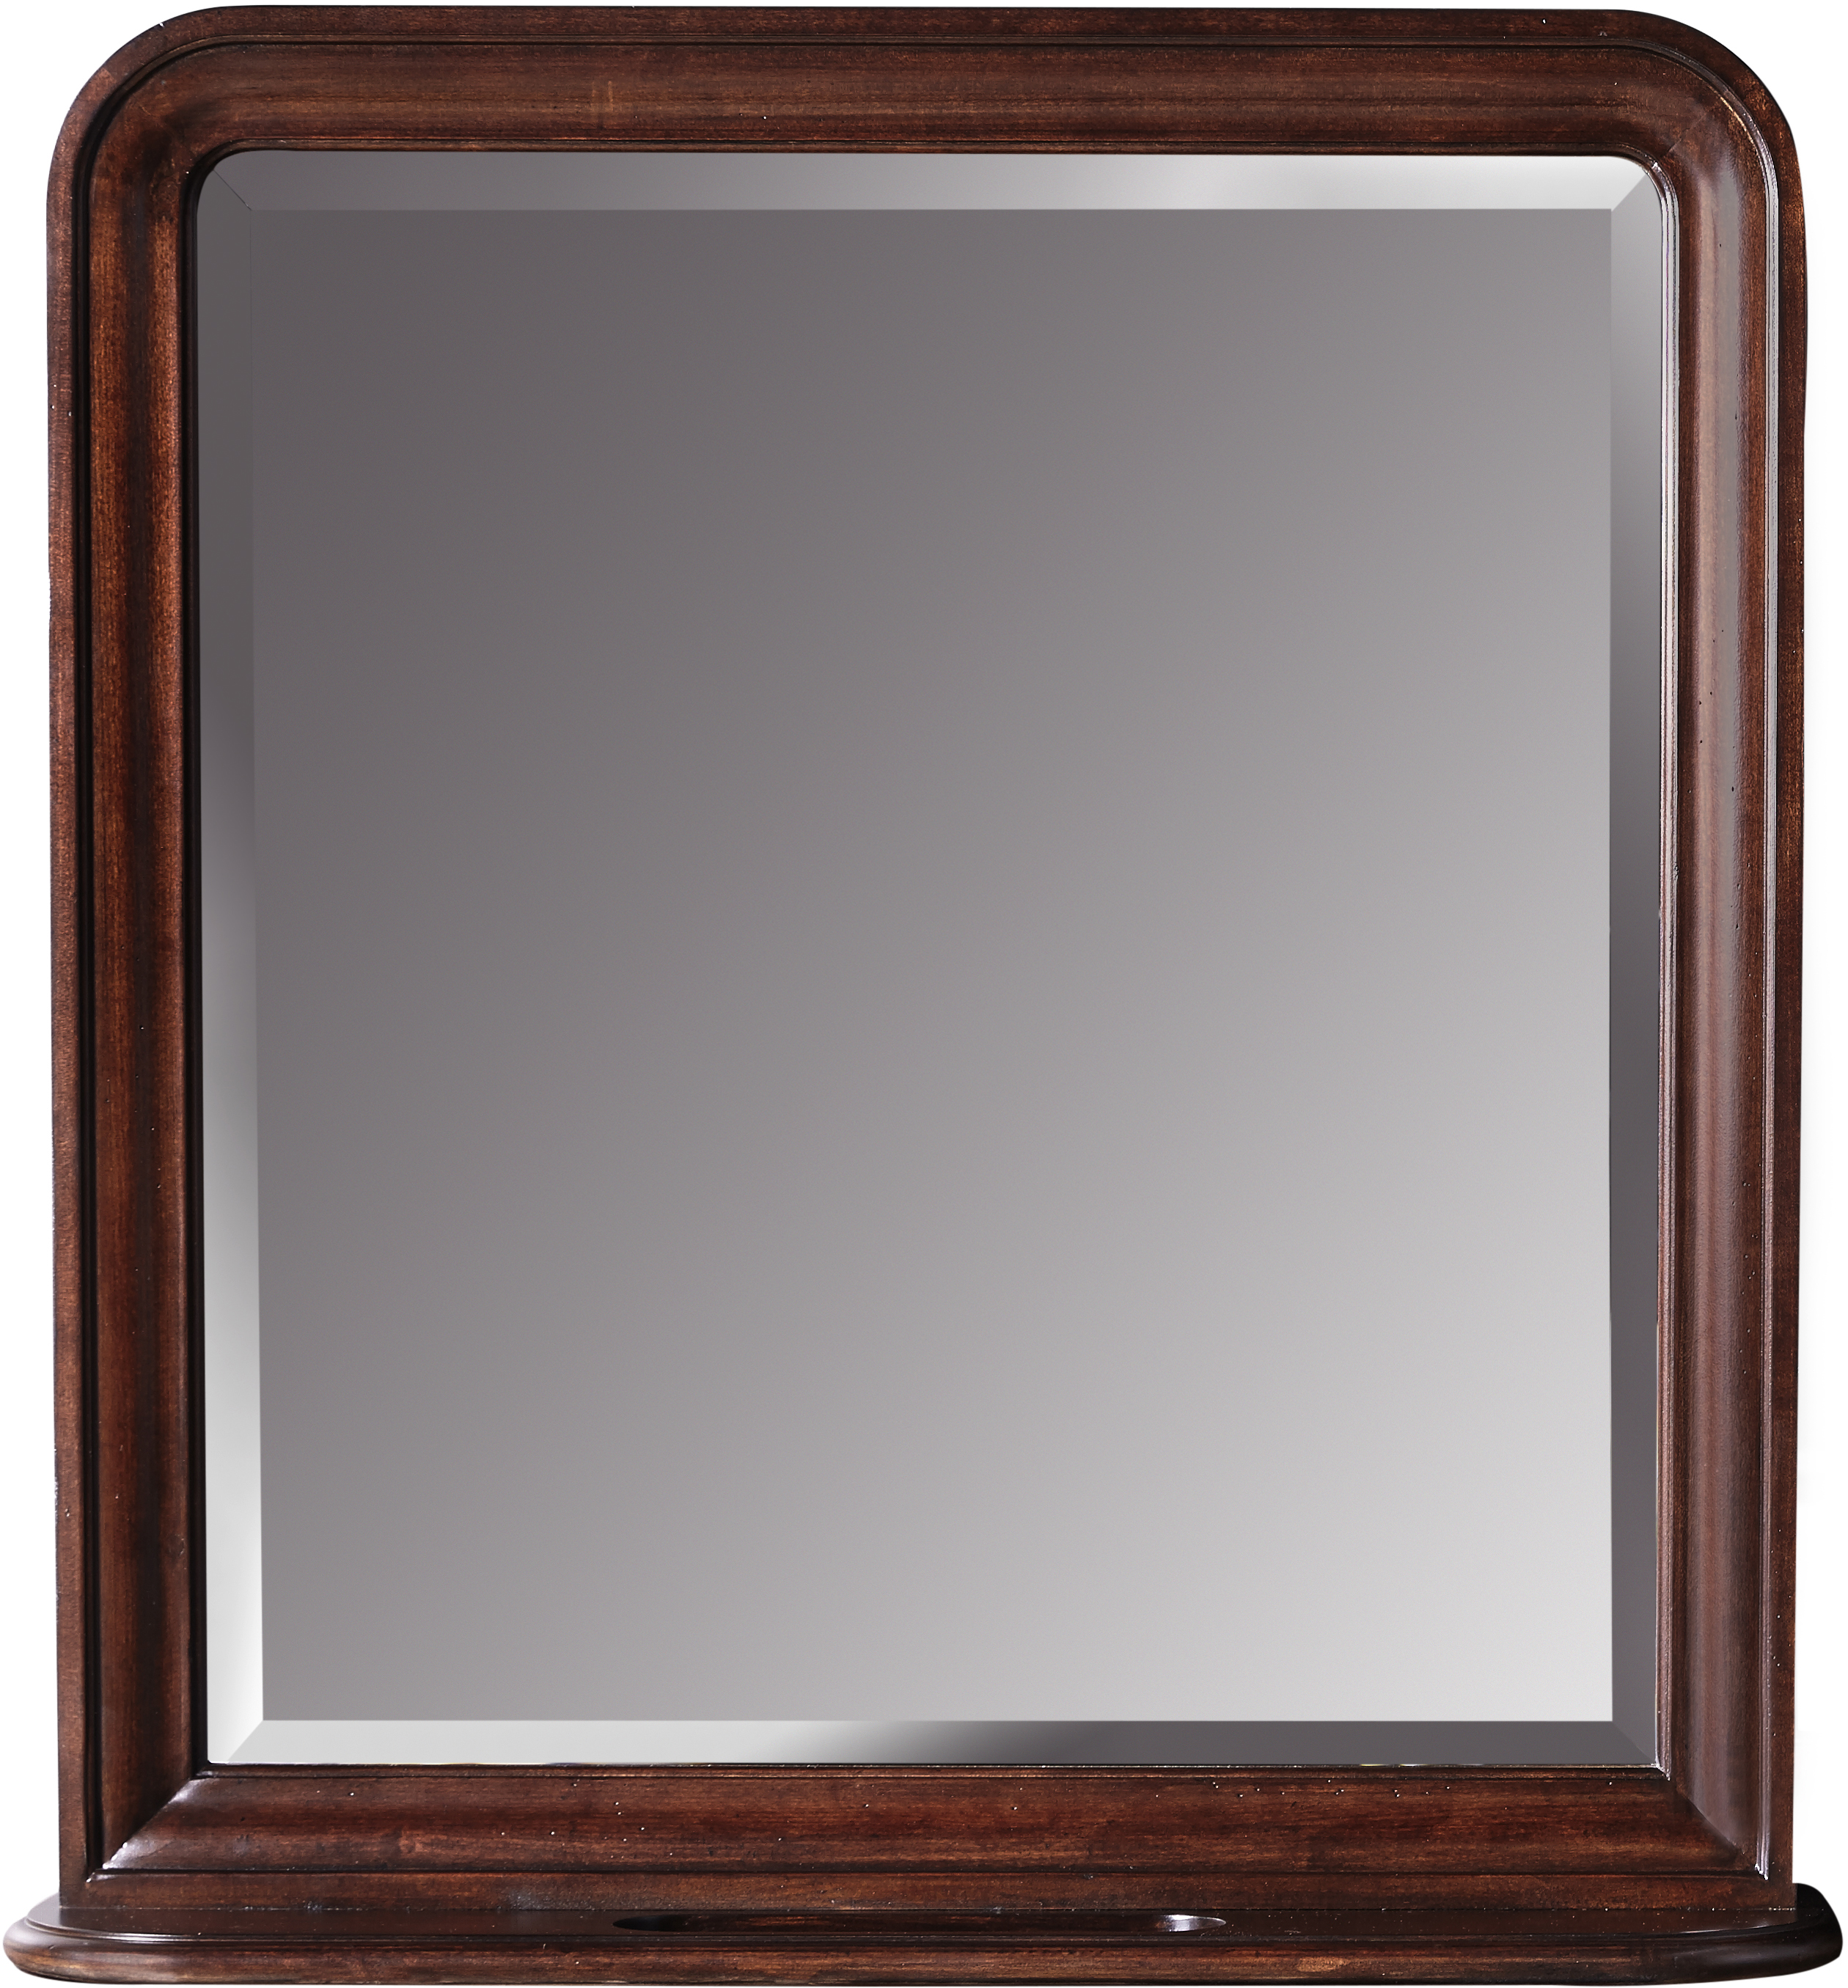 Reprise Storage Mirror by Universal at Furniture Barn